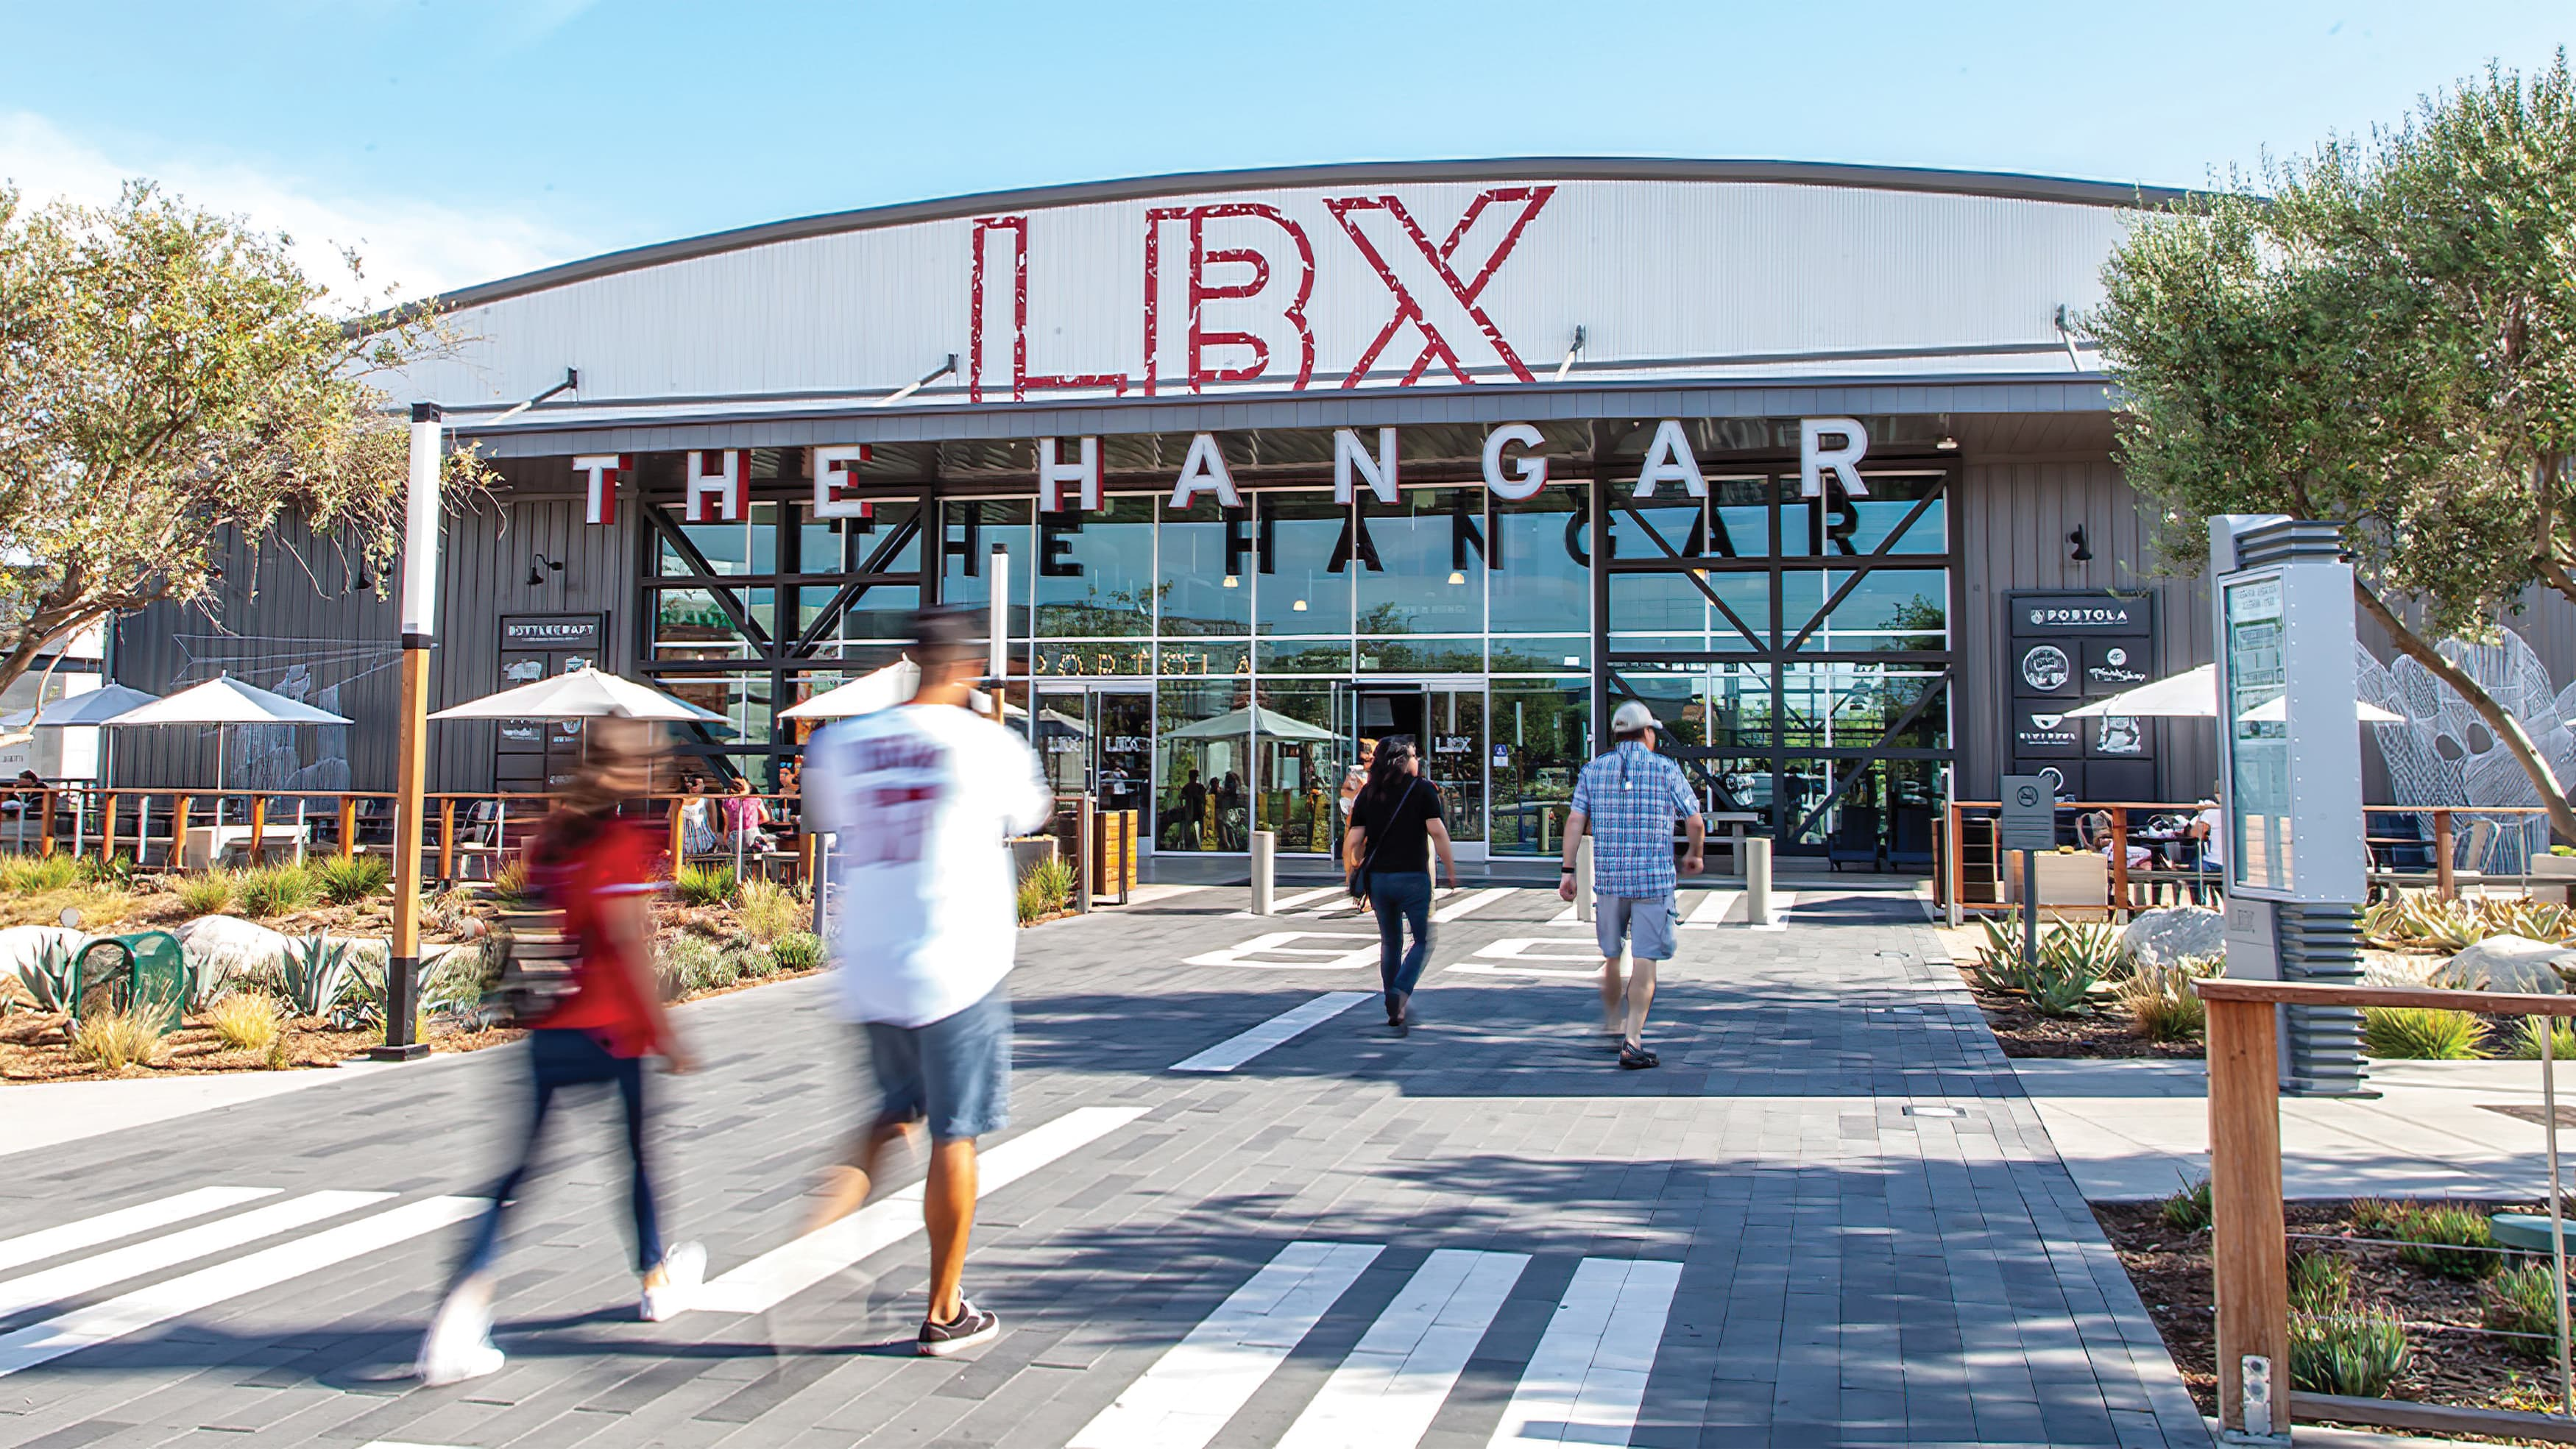 """People approach hangar style building with massive painted """"LBX"""" identity and dimensional """"The Hangar"""" channel letters"""